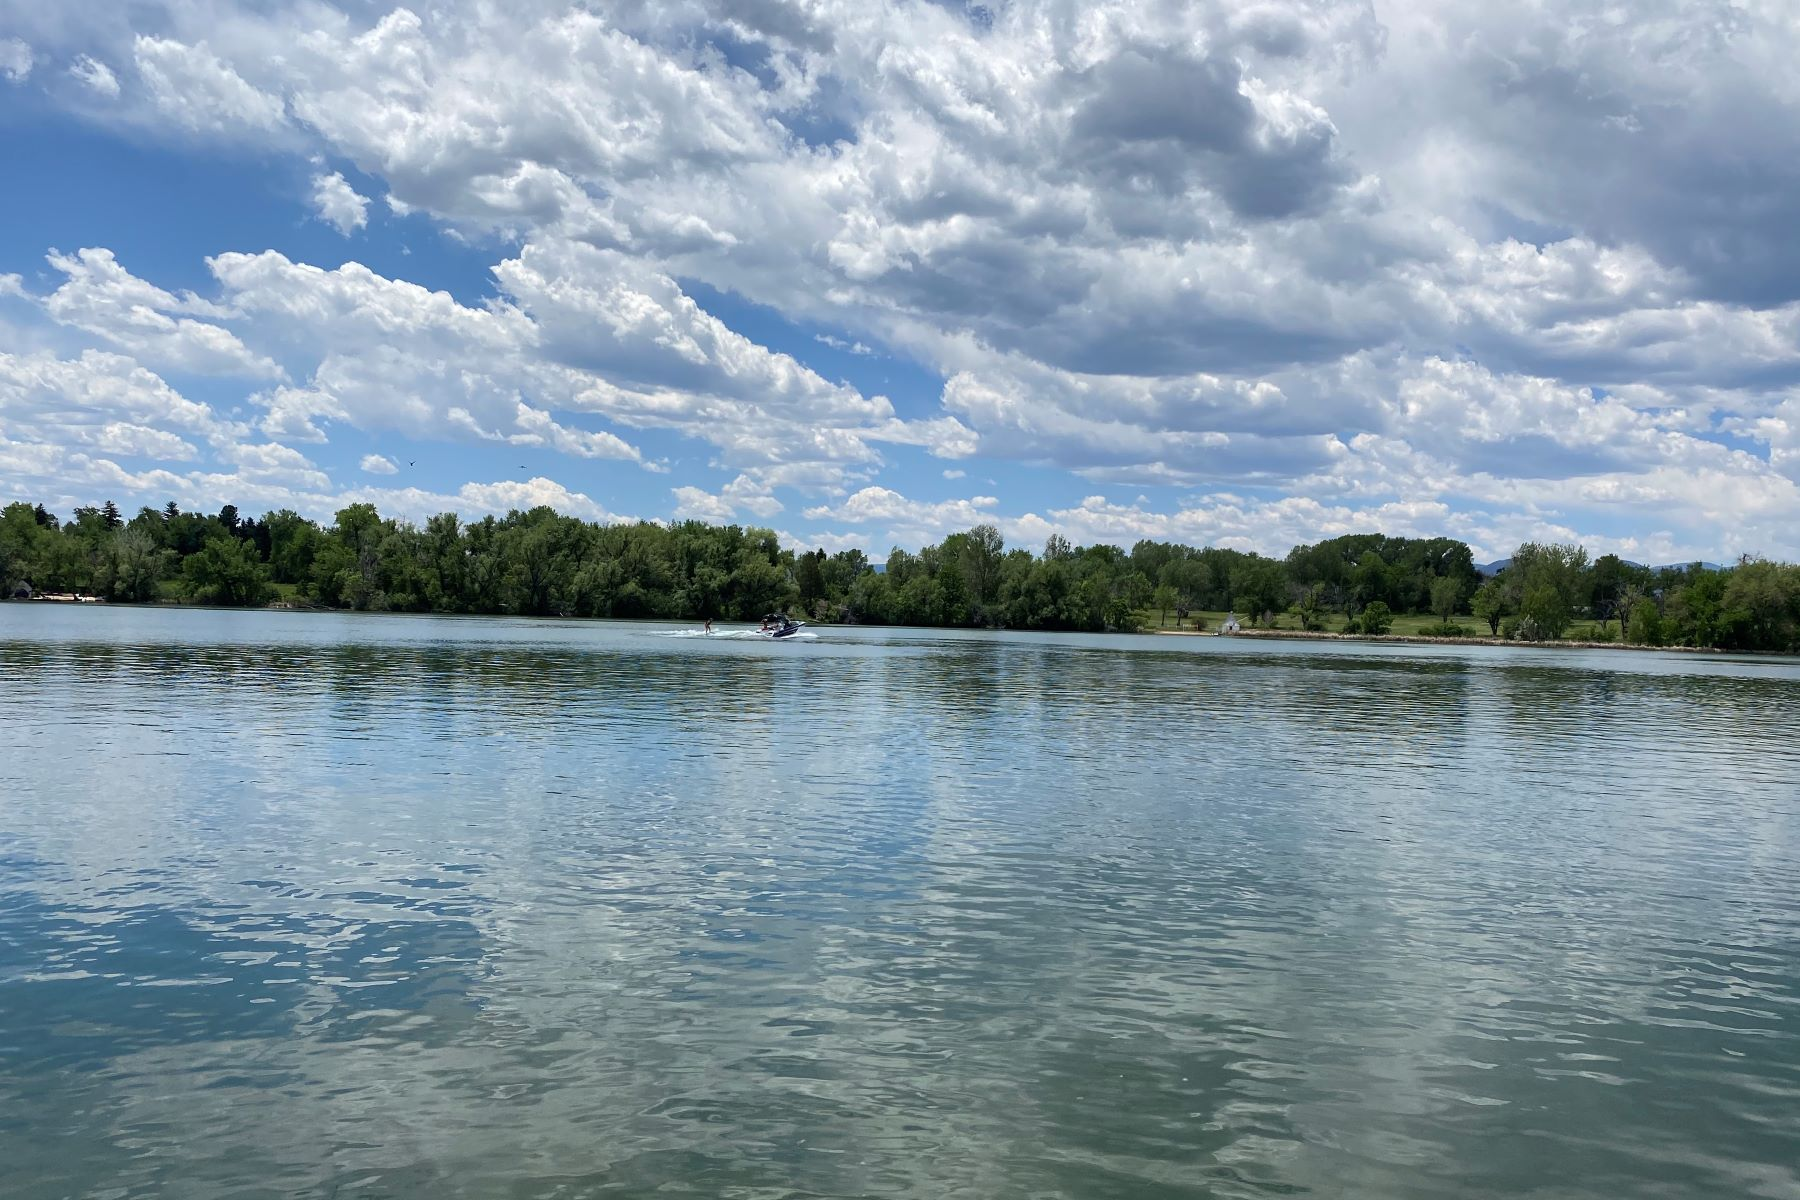 Land for Sale at Build your home on this WATERFRONT BUILDING SITE 6648 W Adriatic Avenue Lakewood, Colorado 80227 United States